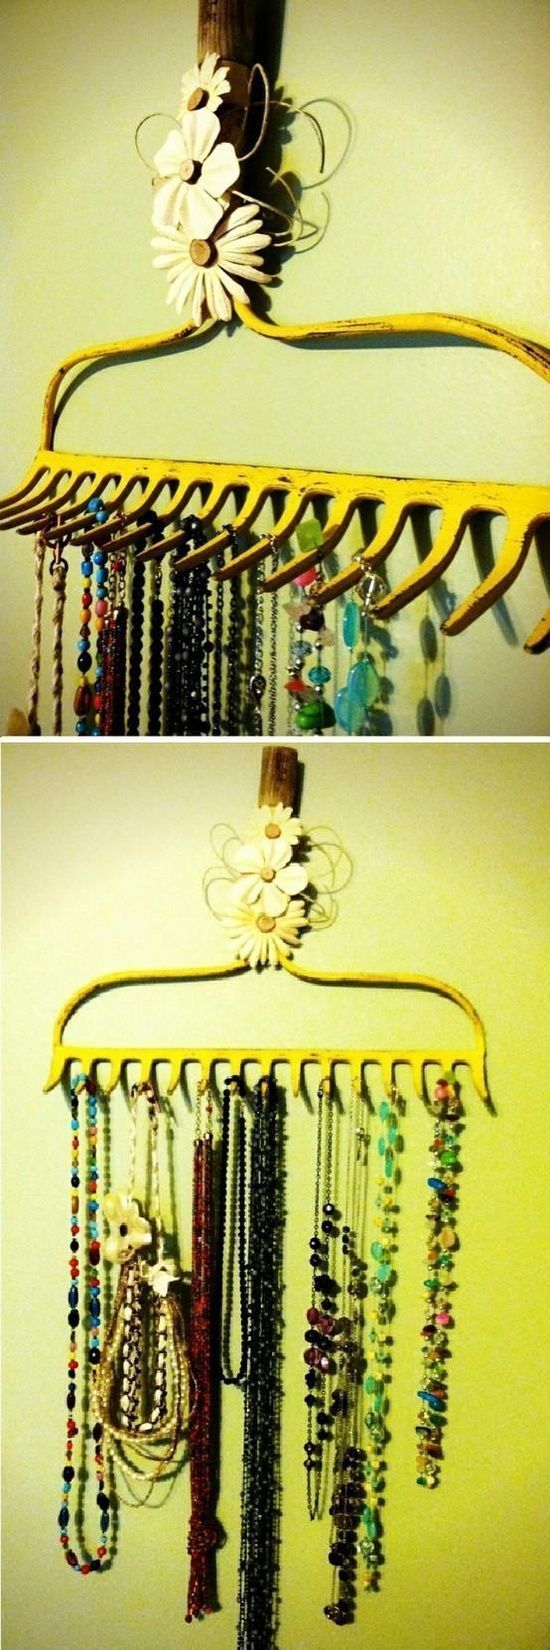 Garden Rake Jewelry Holder //                                                                                                                                                                                 More